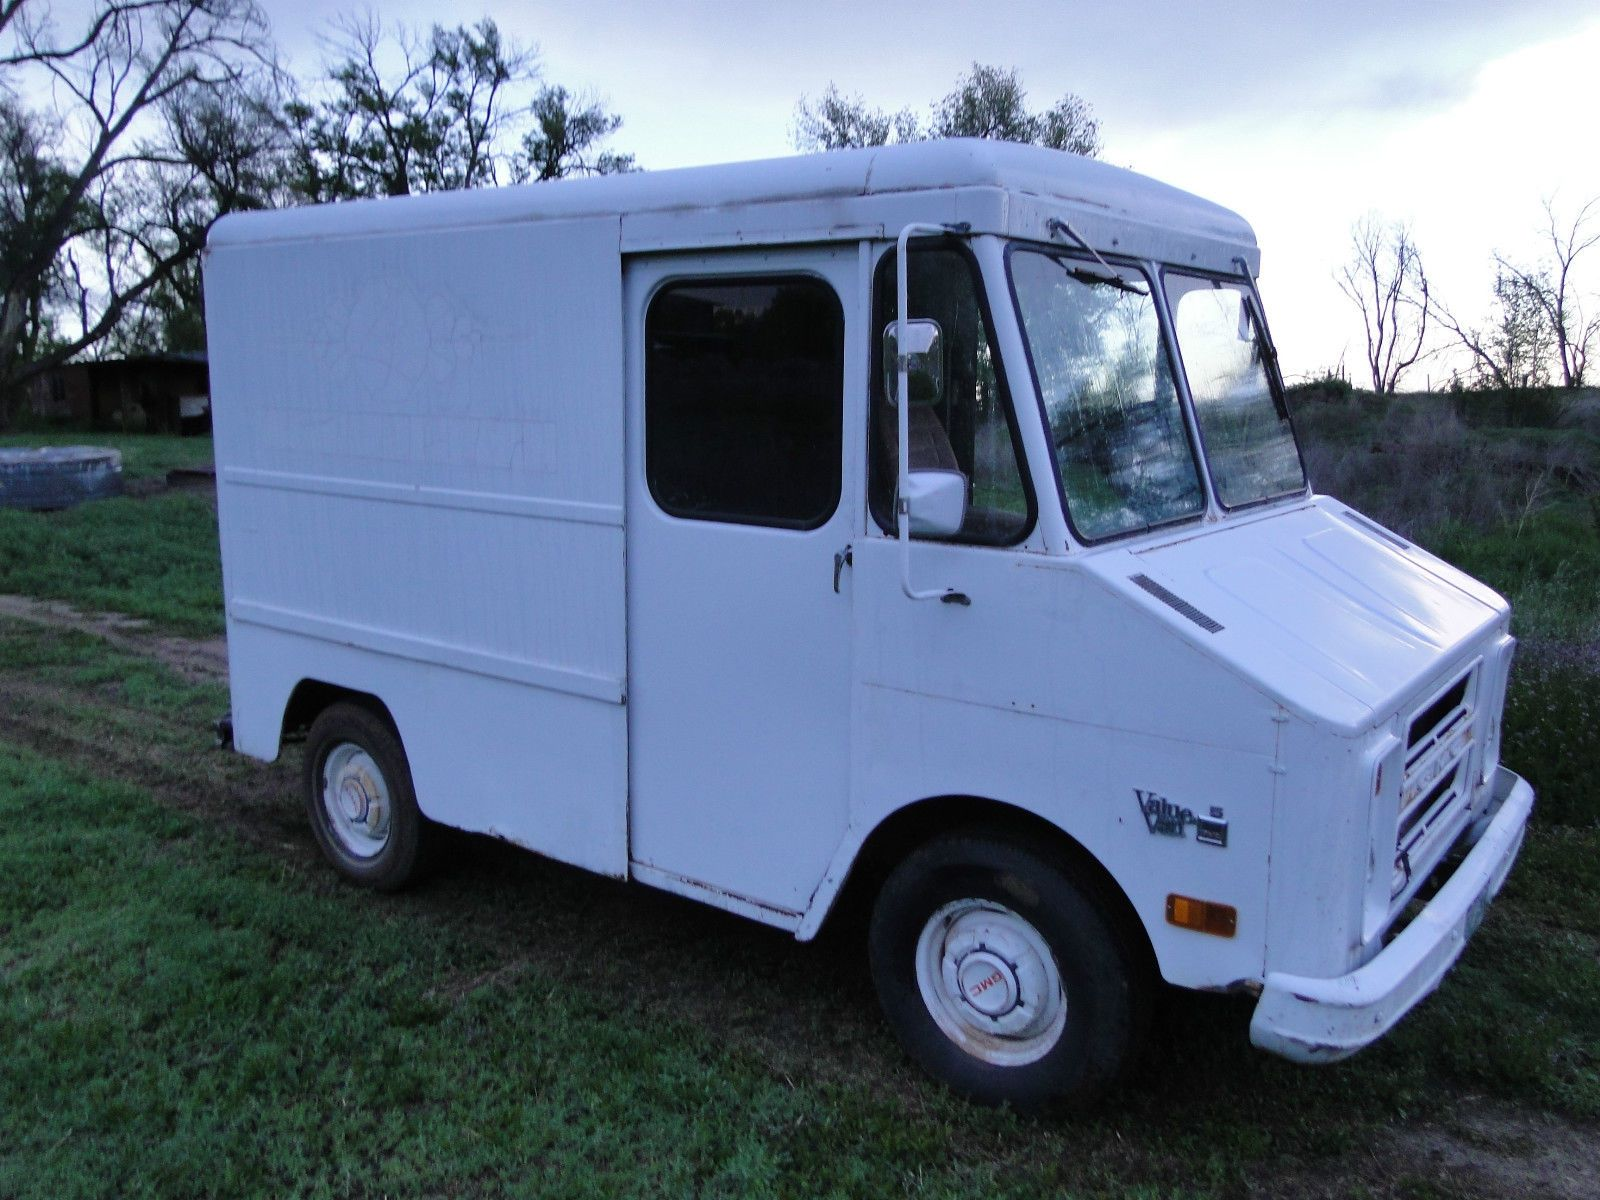 medium resolution of 1972 chevrolet p30 short step van this was the type of step van that was used in the 1970 s 80 s for home newspaper delivery a al hudak special